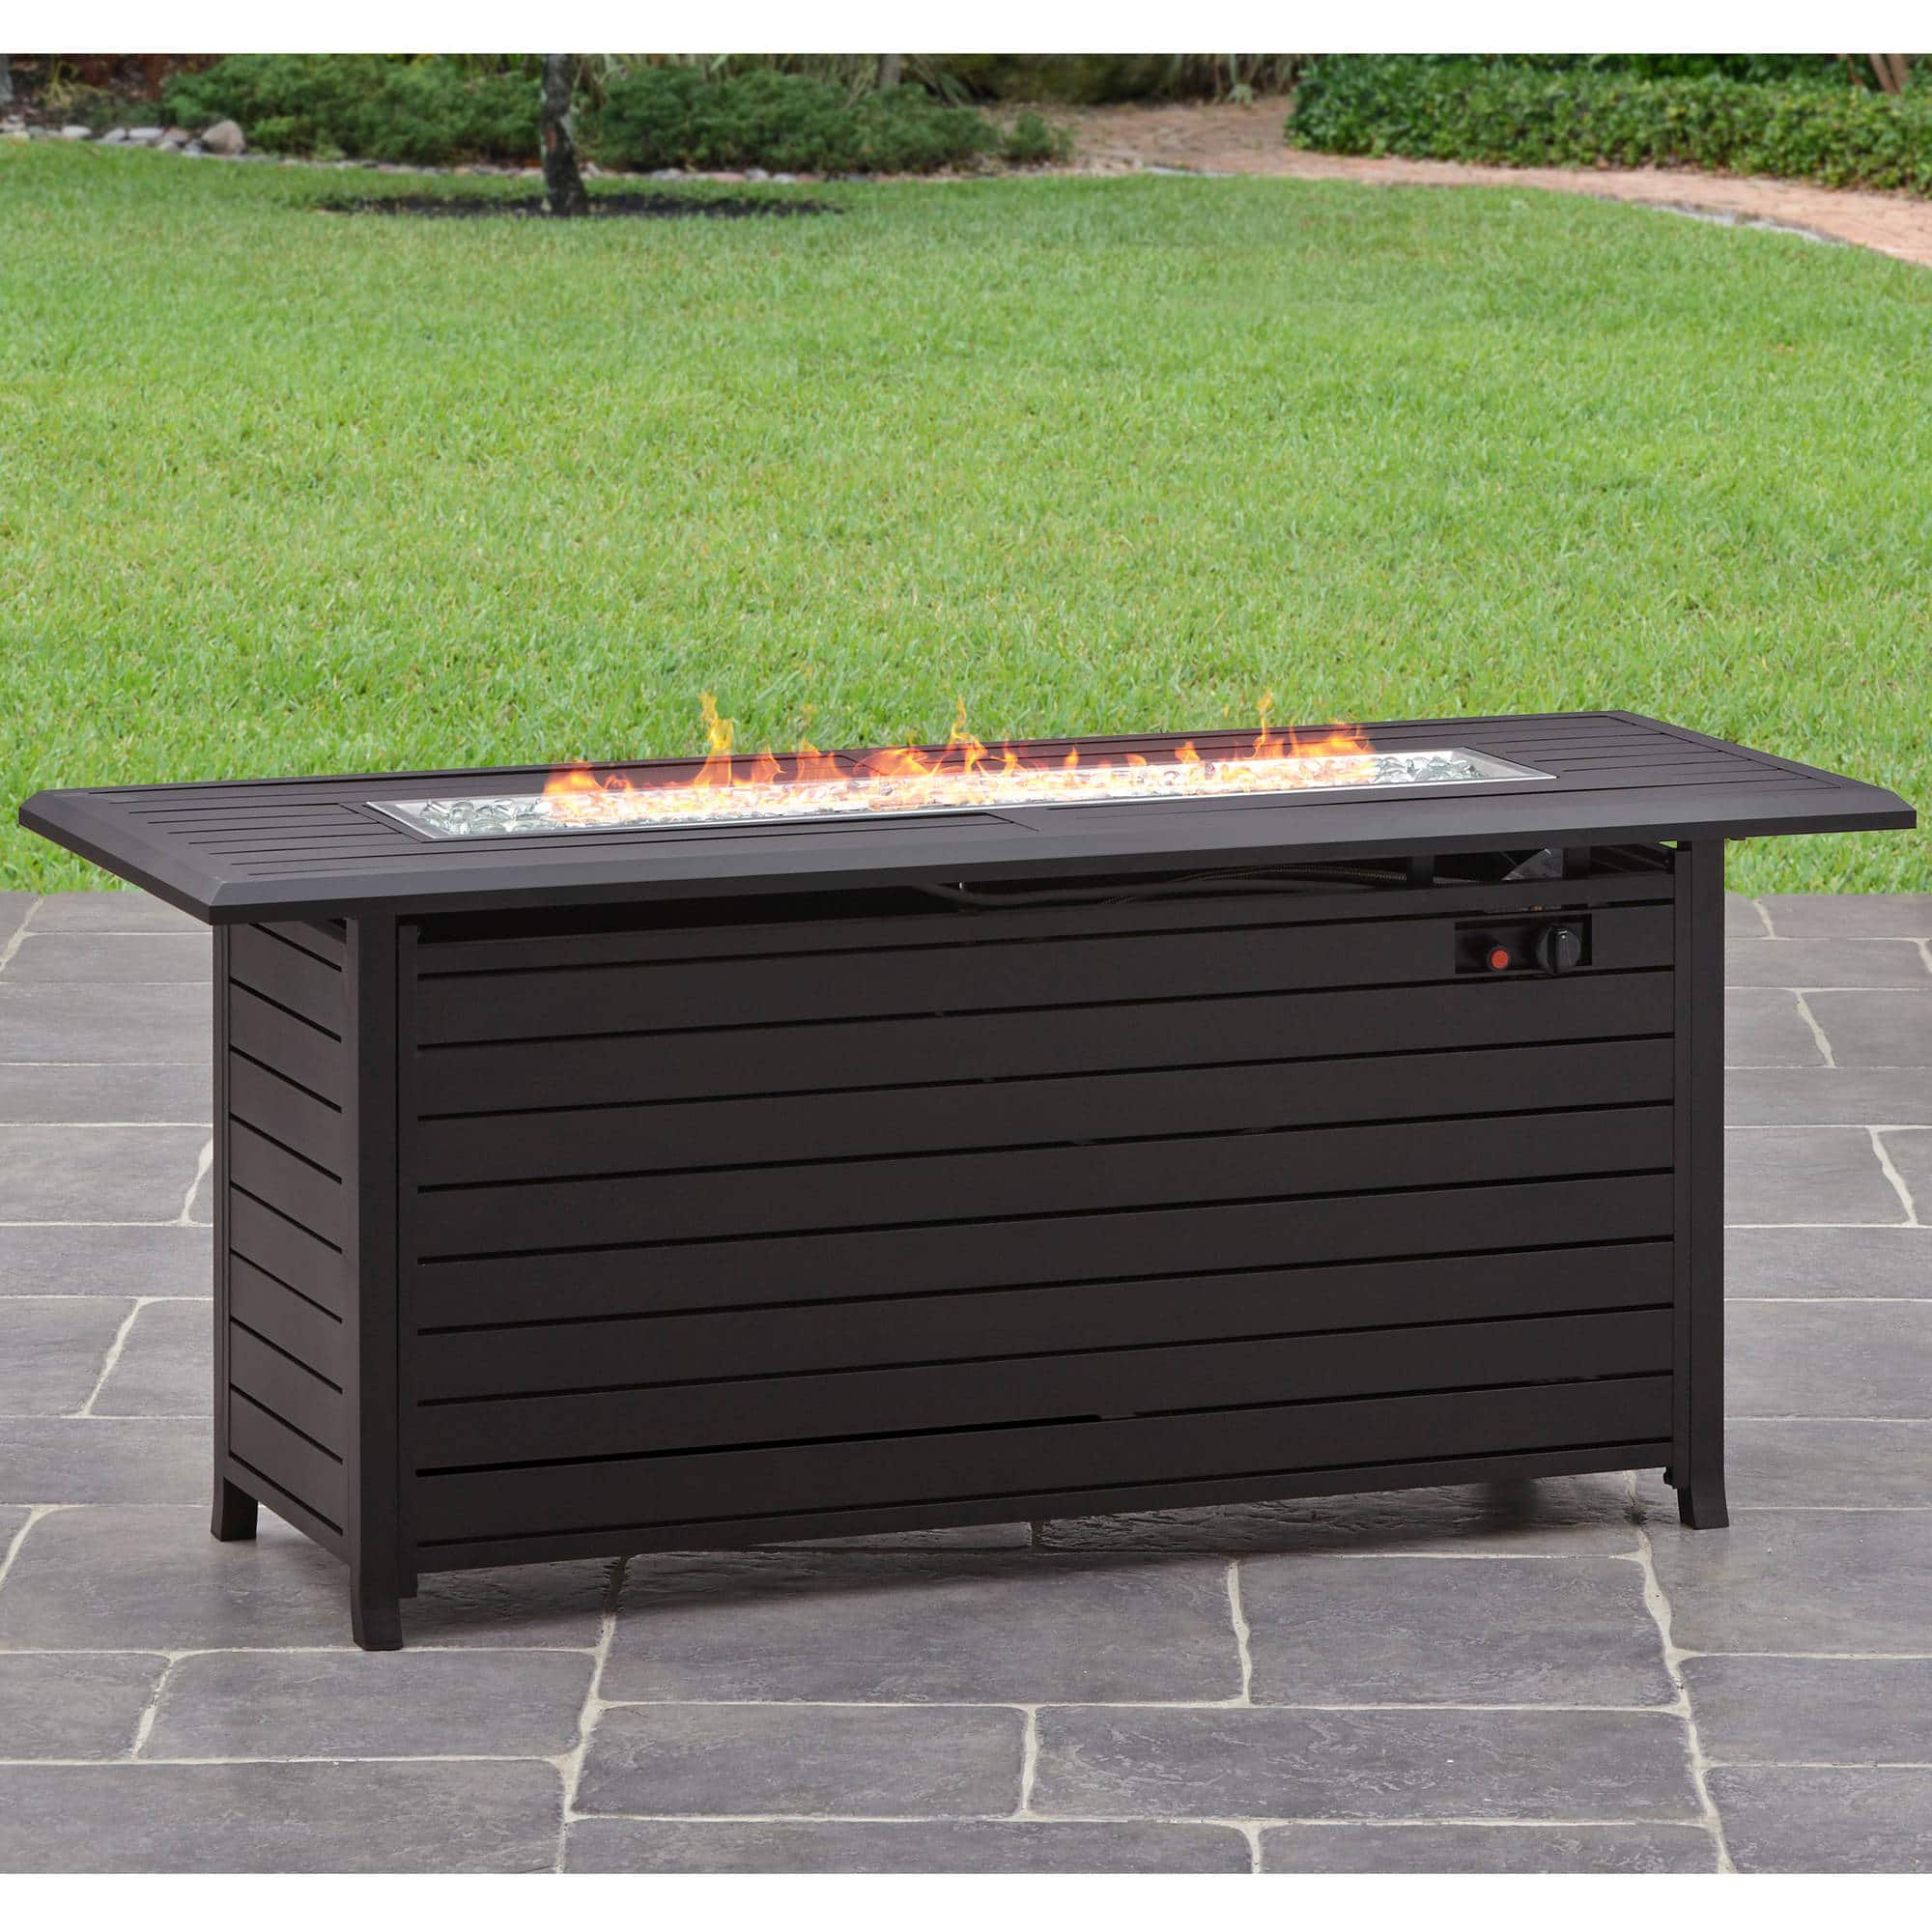 Better Homes And Gardens Gas Fire Pits On Clearance Walmart B M Ymmv 139 Page 2